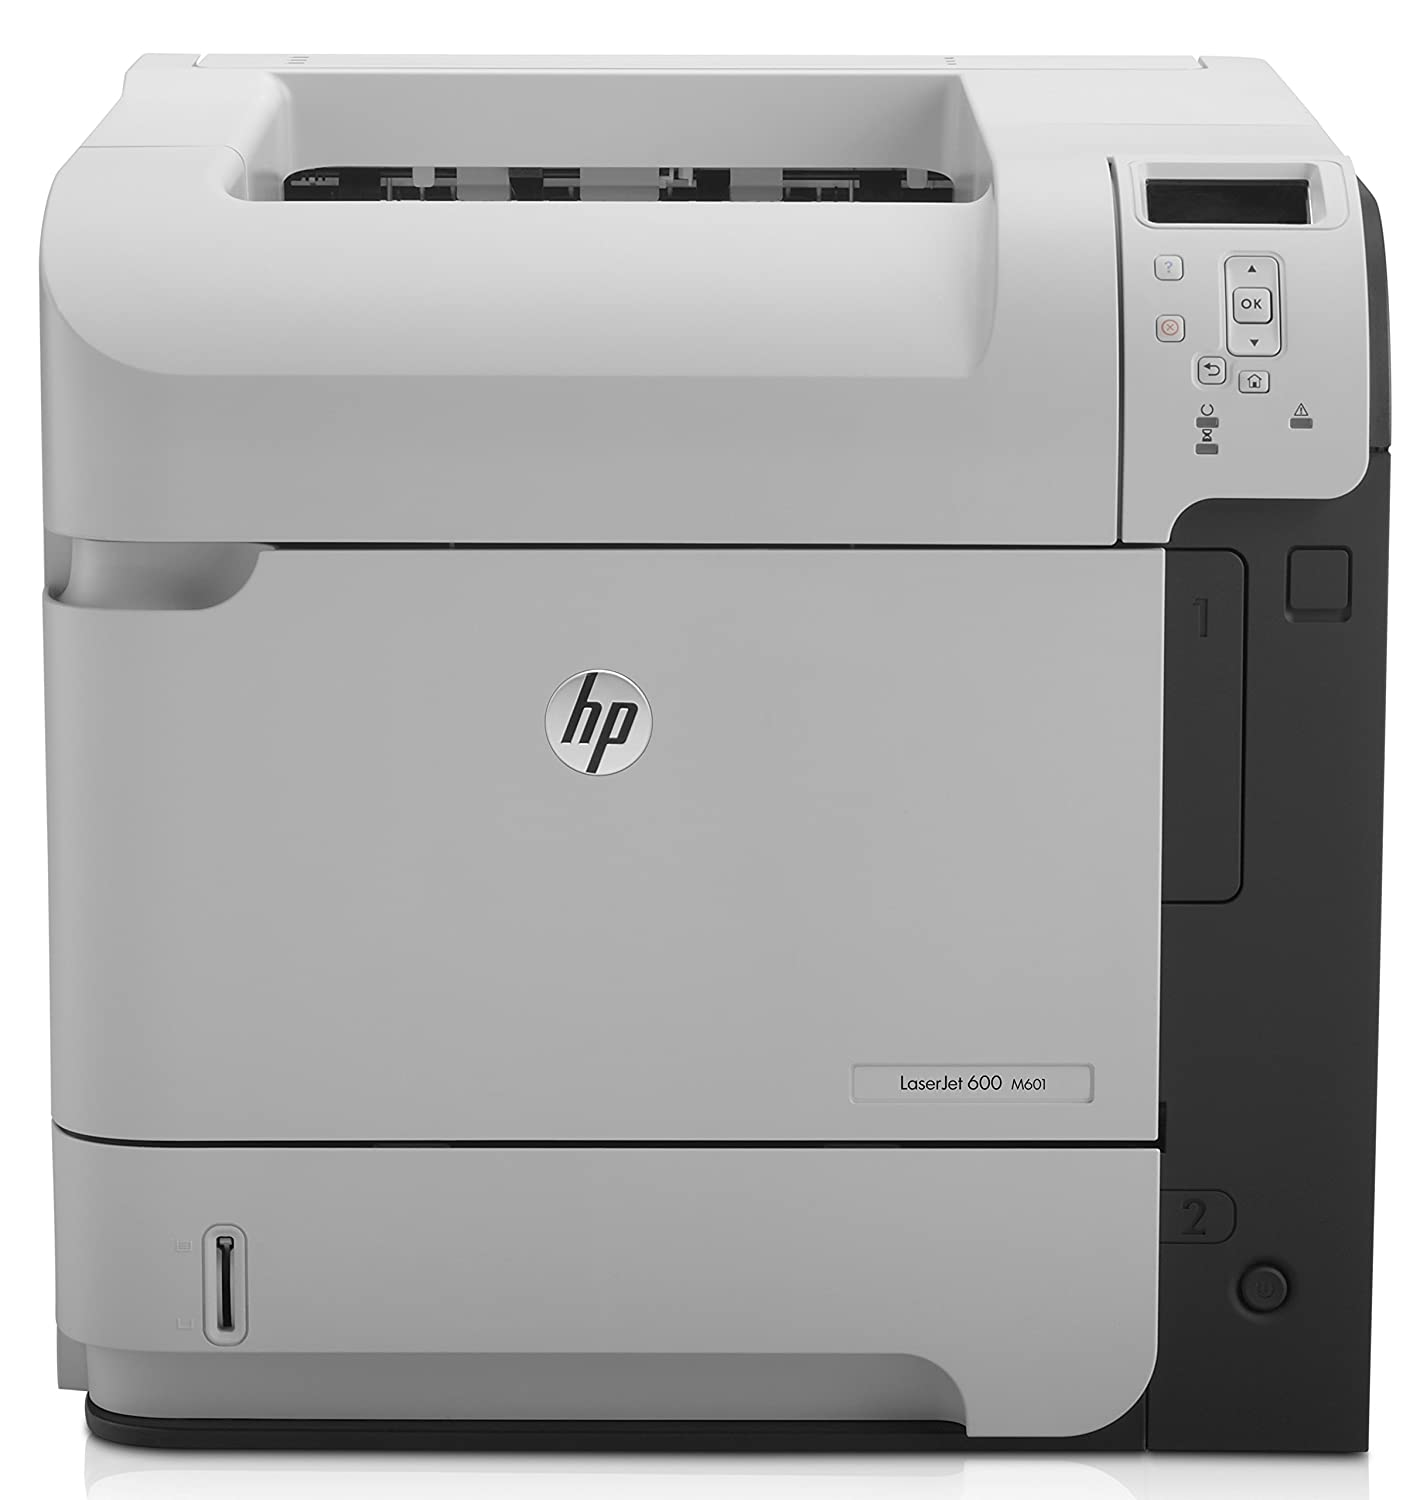 Amazon.com: HP ce989 a LaserJet Enterprise 600 M601 N ...